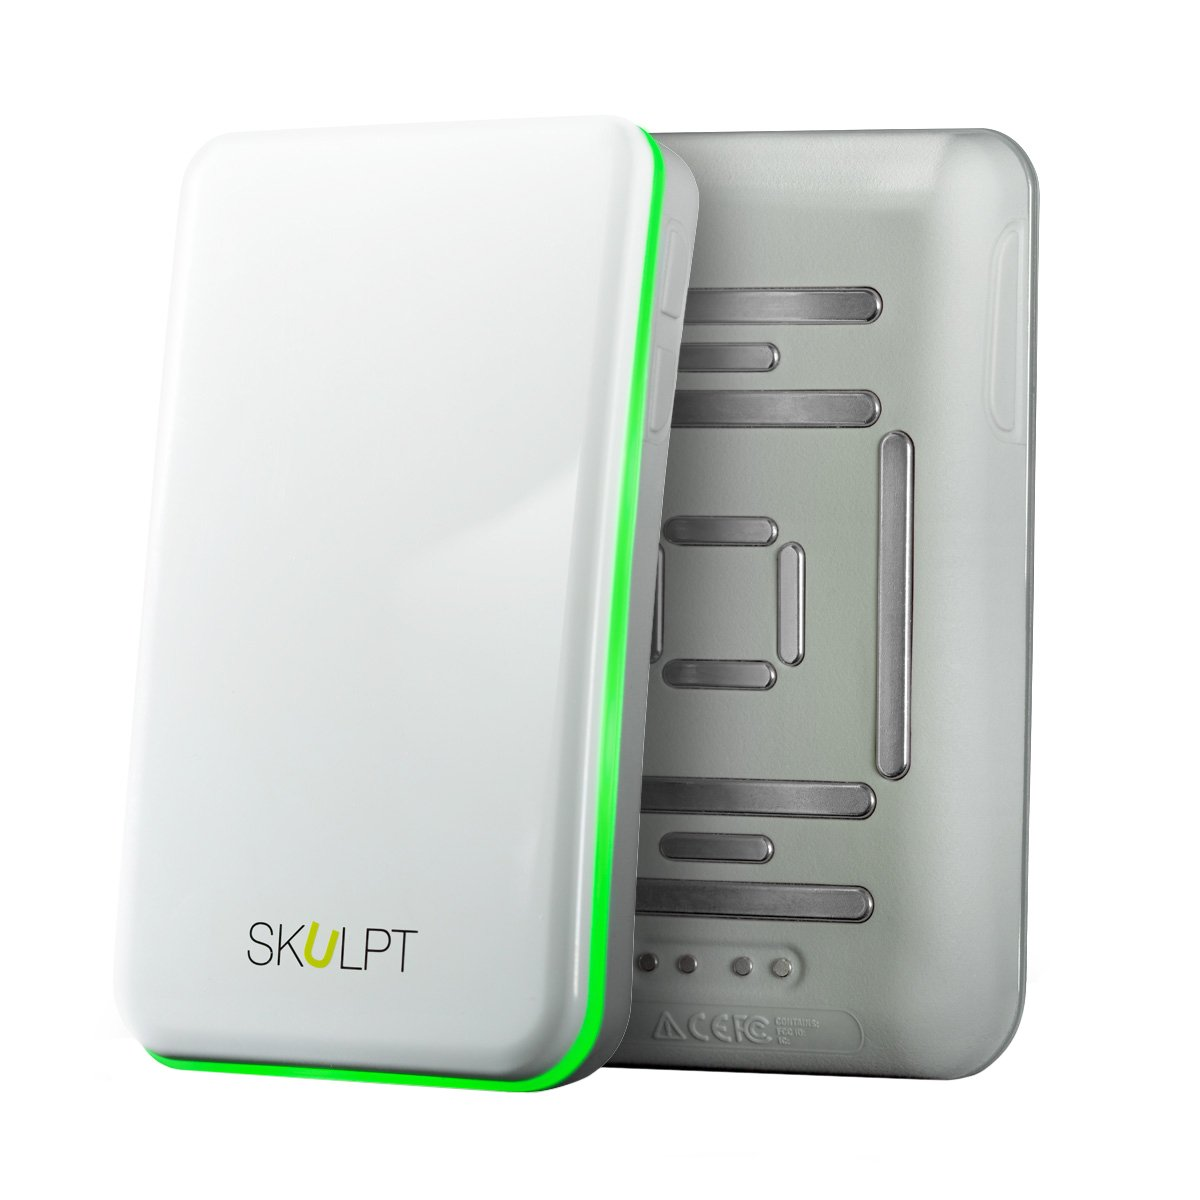 The Skulpt Scanner. Measures Body Fat Percentage, Identifies Muscle Strengths and Weaknesses, and Provides a Personalized Workout Plan to Burn Fat and Build Muscle.